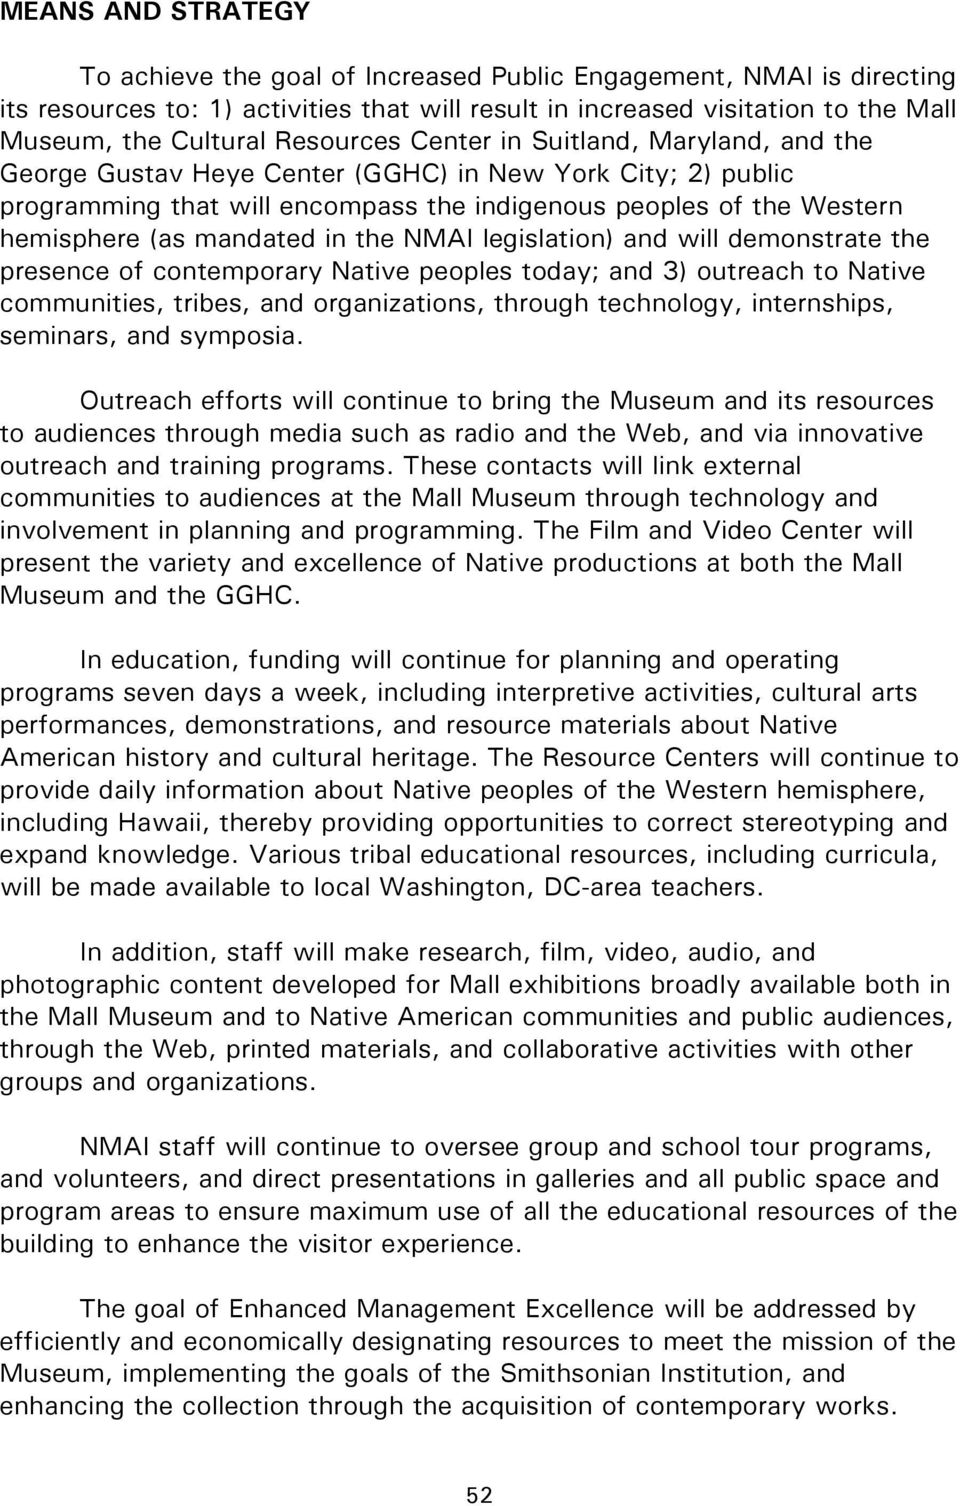 mandated in the NMAI legislation) and will demonstrate the presence of contemporary Native peoples today; and 3) outreach to Native communities, tribes, and organizations, through technology,